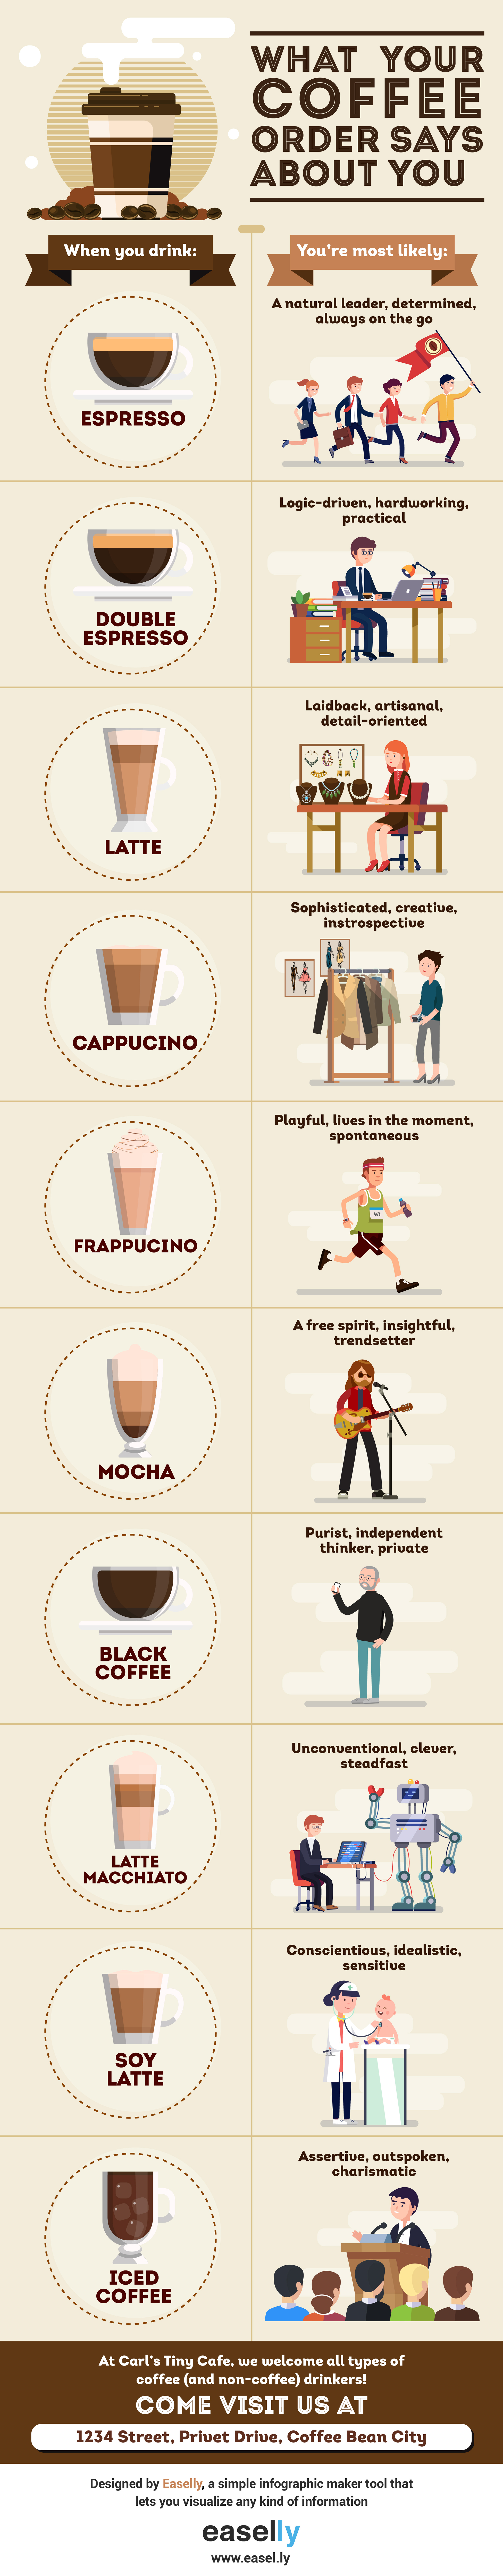 what your coffee order says about you infographic